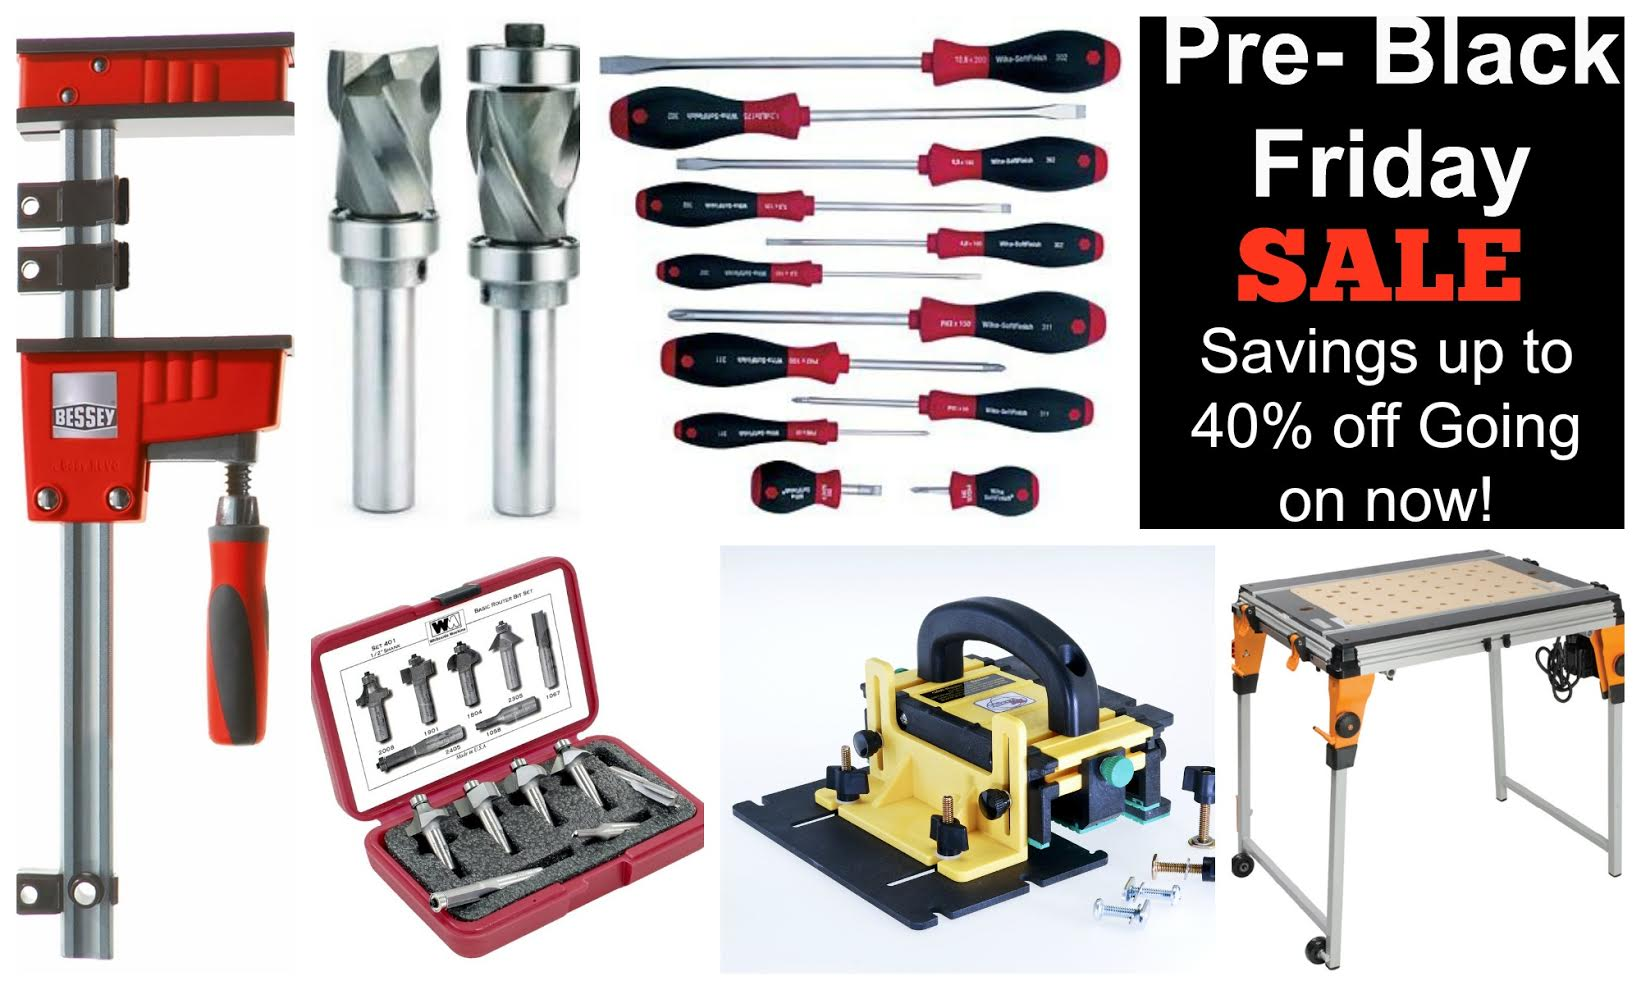 The Best Black Friday Deals on Tools and Electronics | Make: